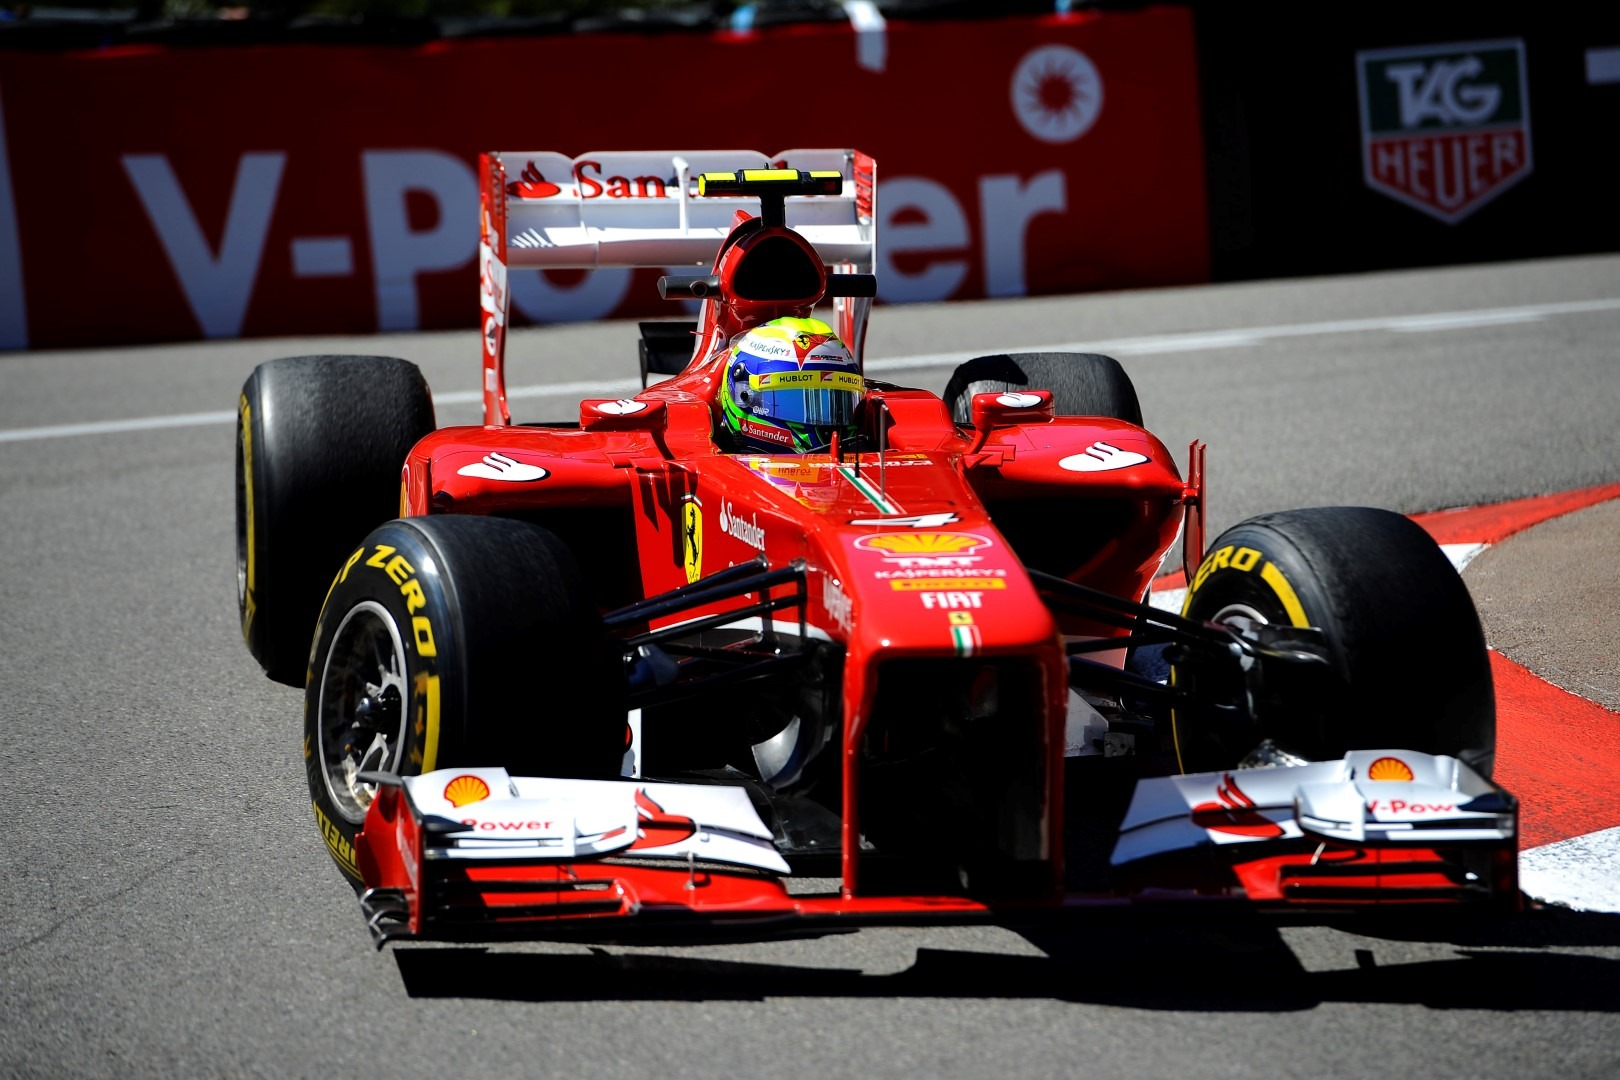 New F1 cars for Massa & Maldonado in Canada Grand Prix